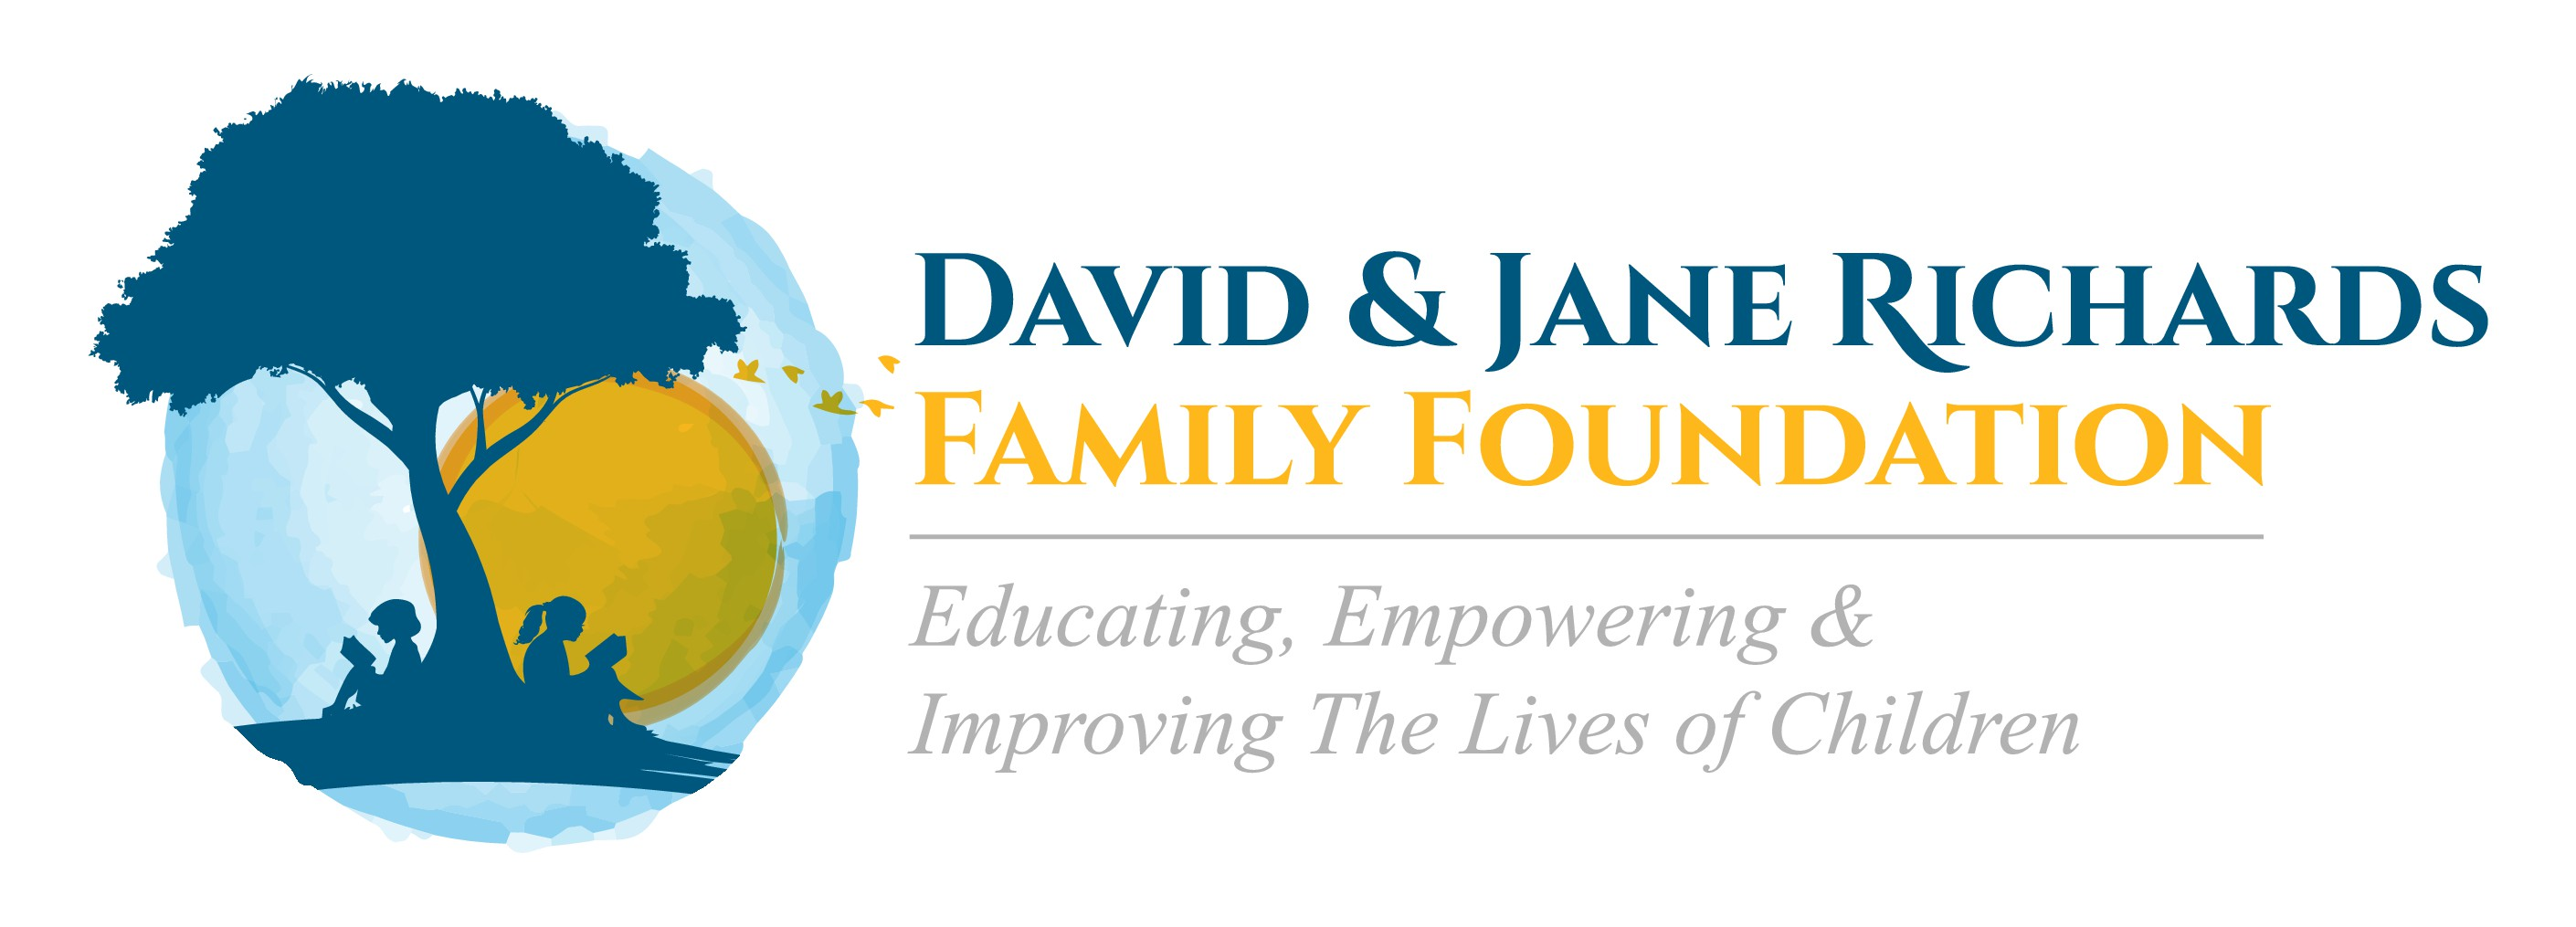 Charity with the purpose to improve the lives of children